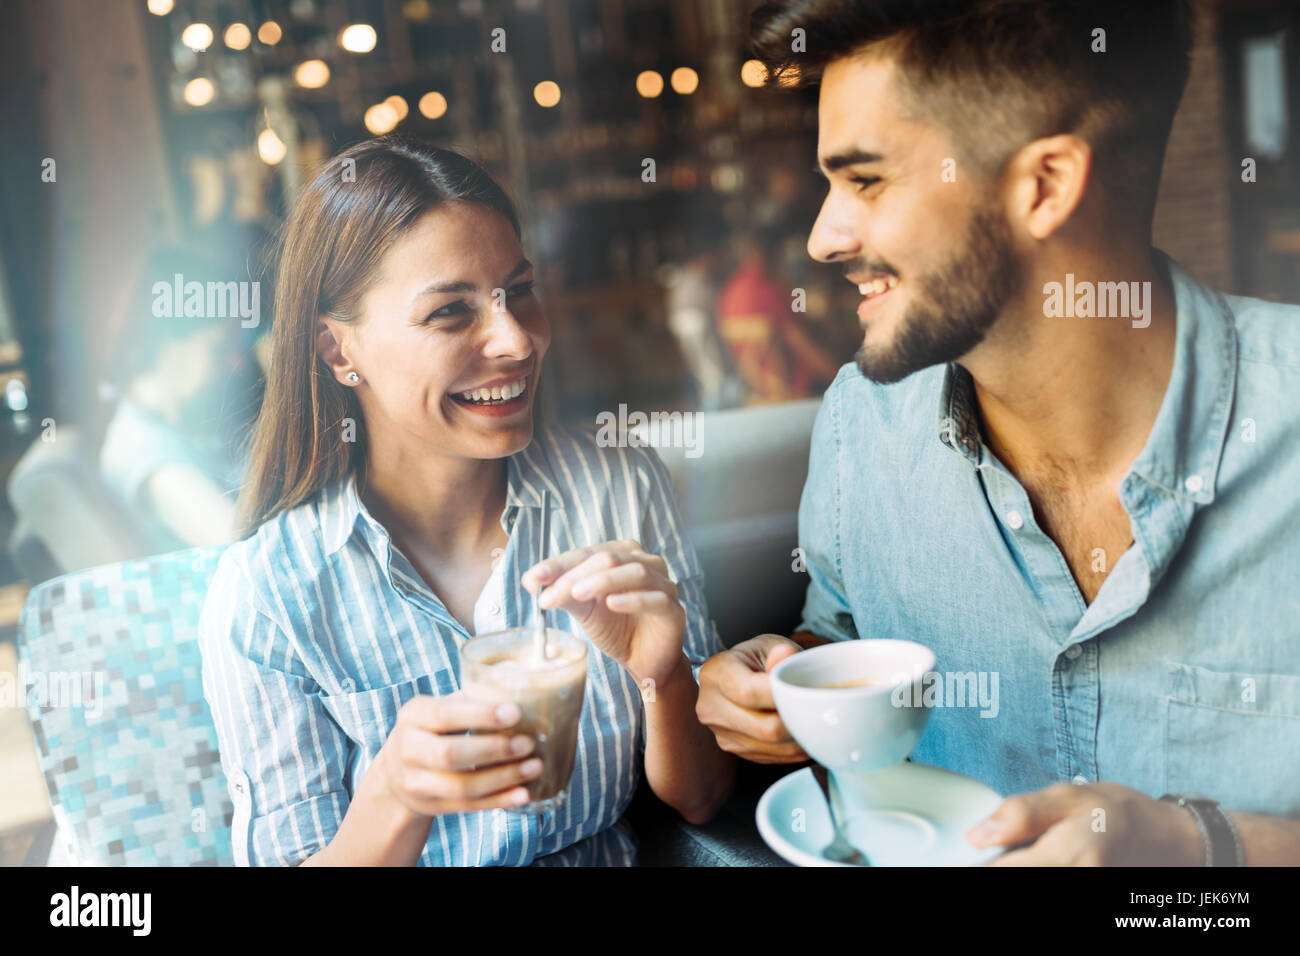 Young attractive cheerful couple on date in coffee shop Photo Stock